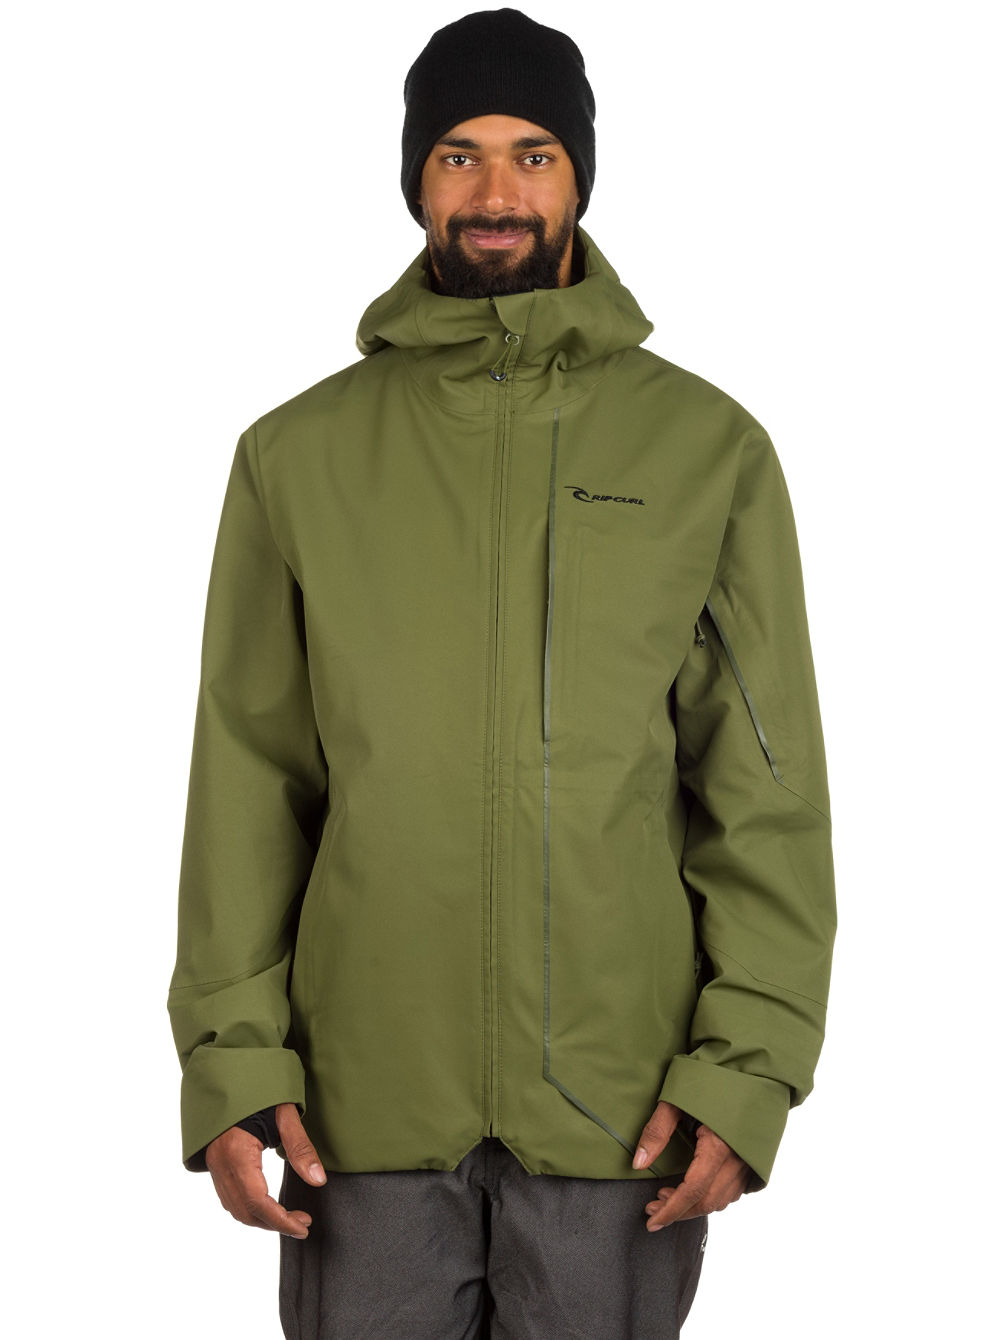 Pro Search 3L Jacket